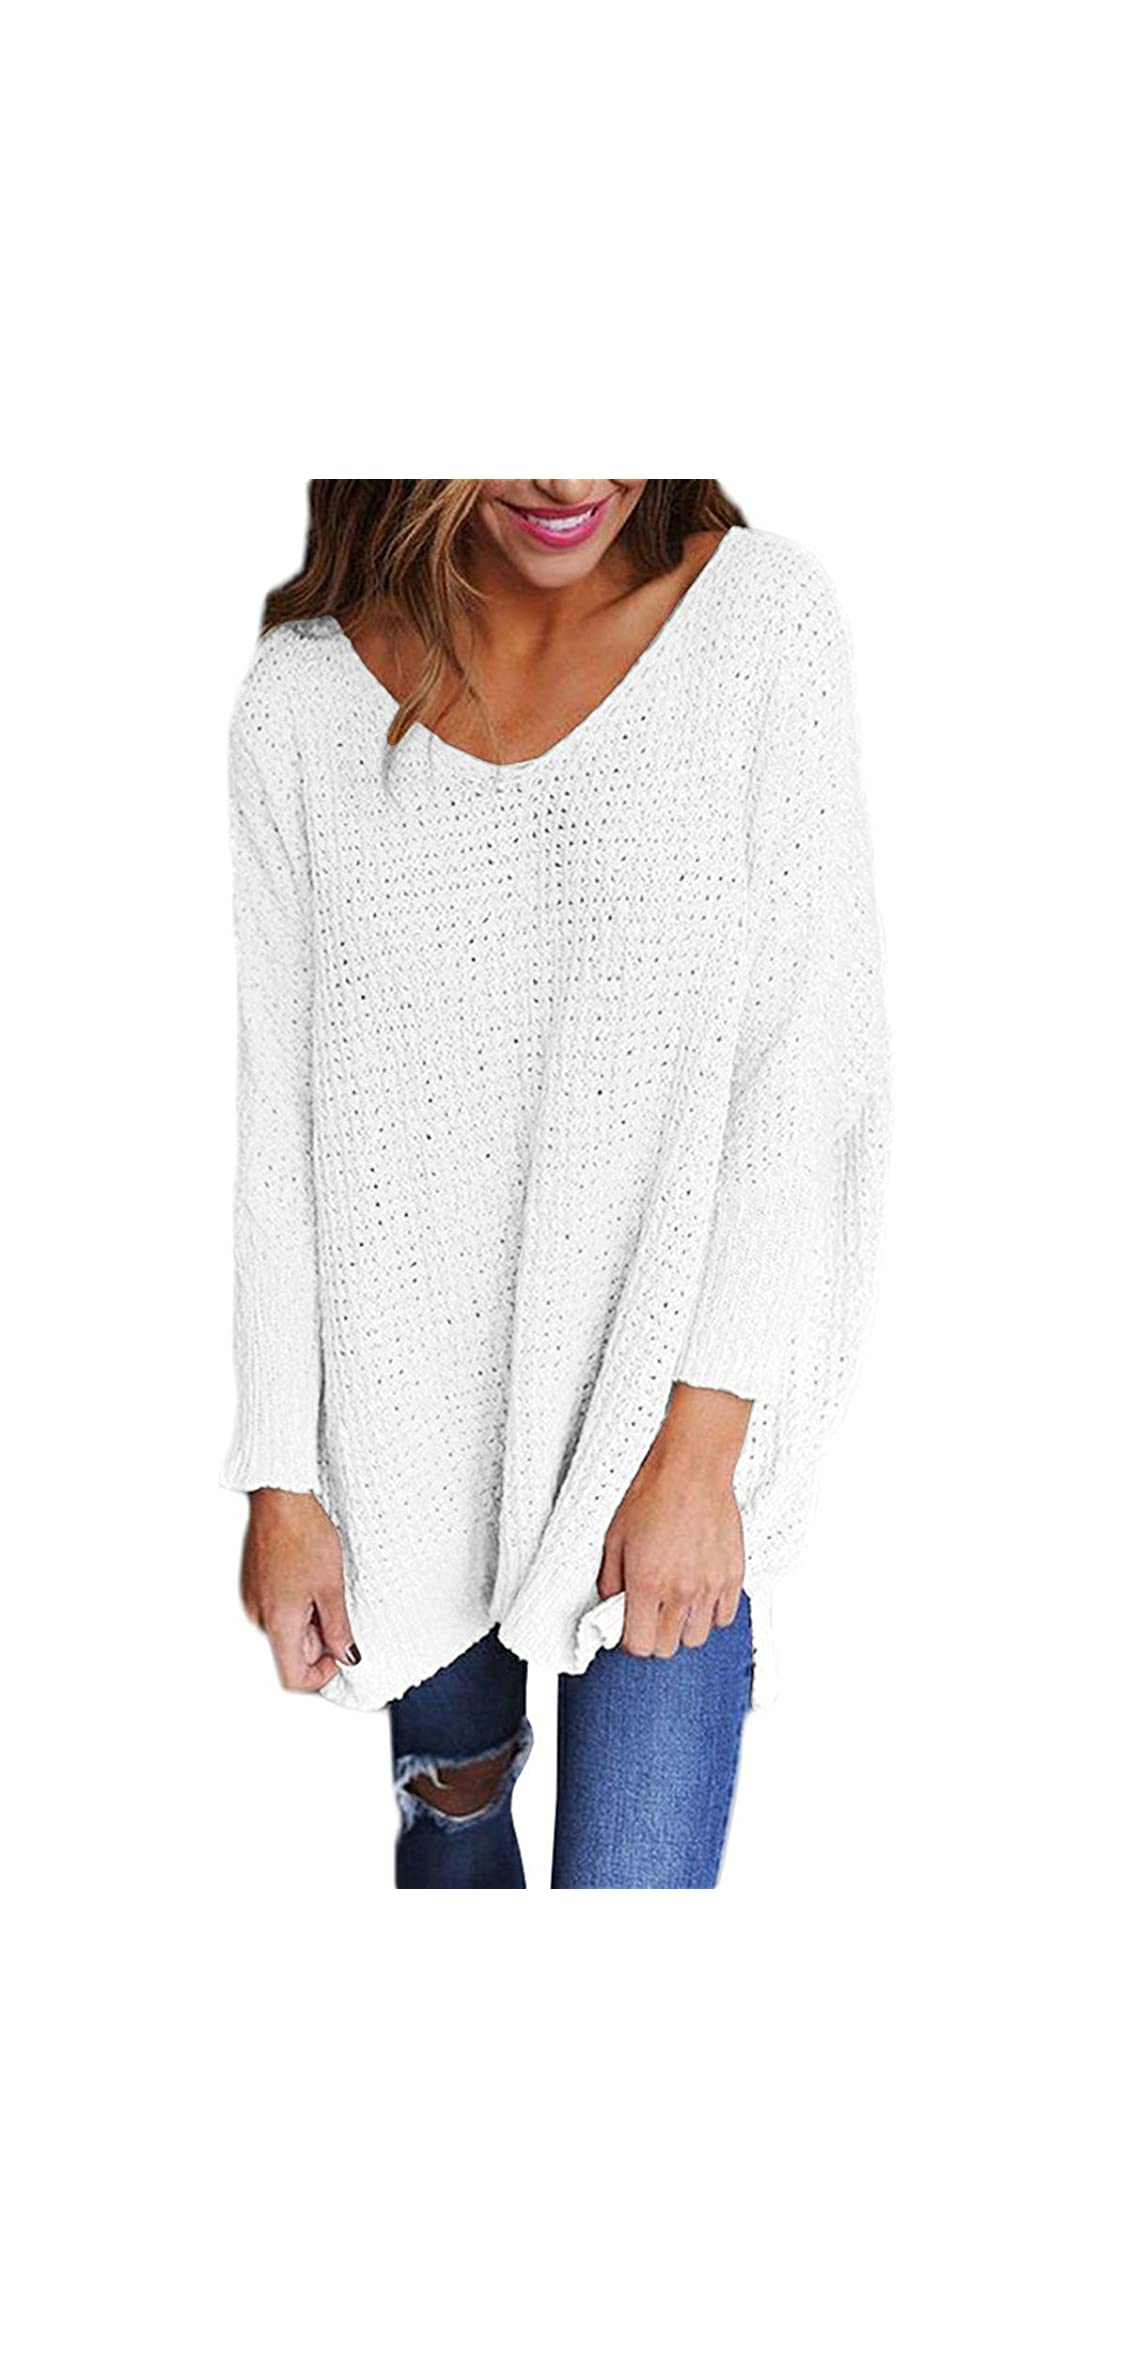 Sweater Women Long Sleeve Blouse V-neck Pullover Baggy